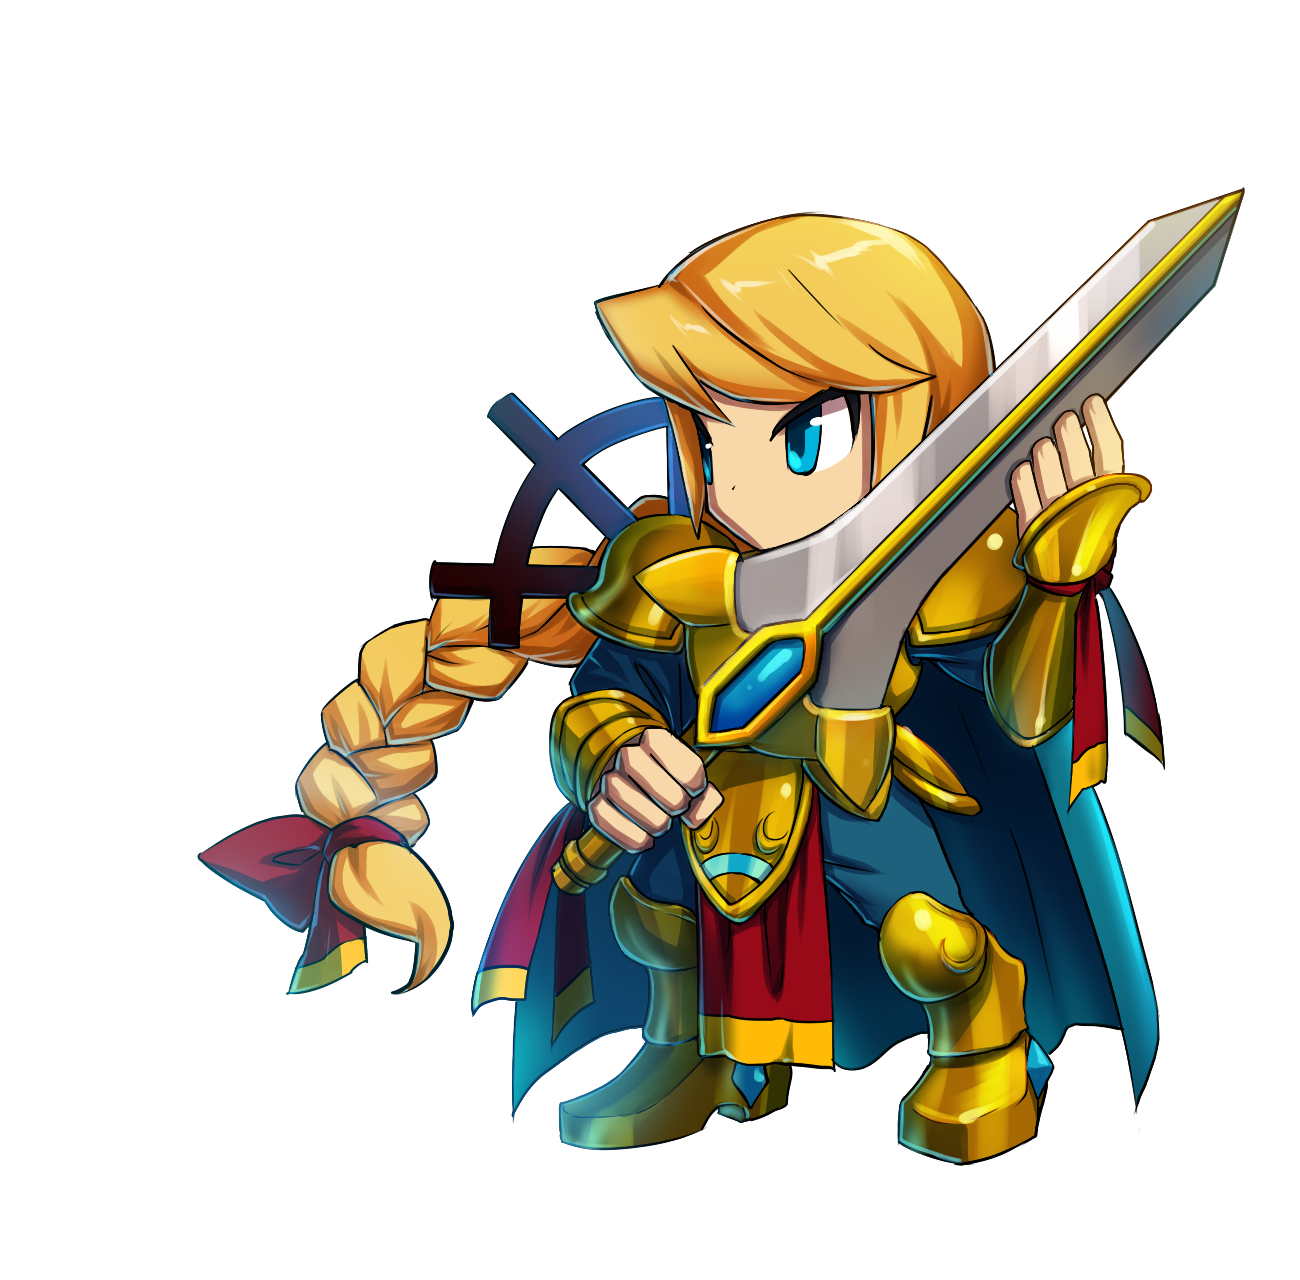 Knight clipart squire. Atro brave frontier rpg